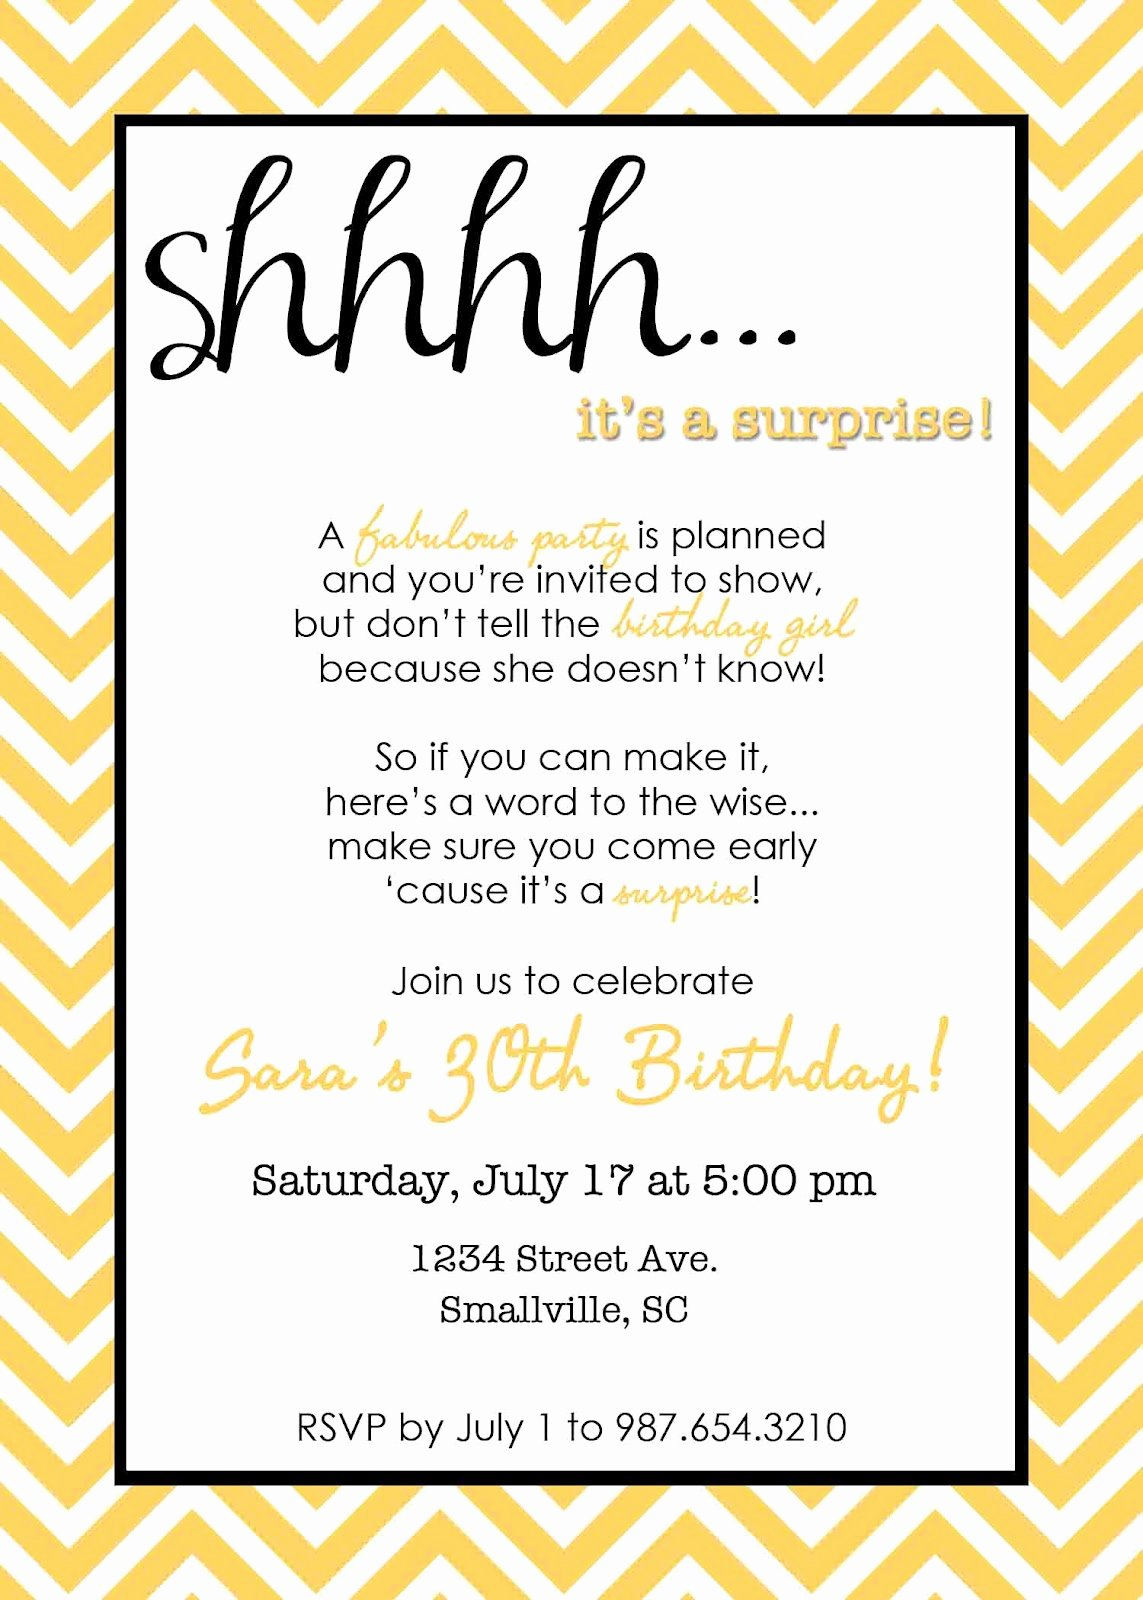 Surprise Party Invitation Template Best Of Wording for Surprise Birthday Party Invitations Free Invitation Templates Drevio